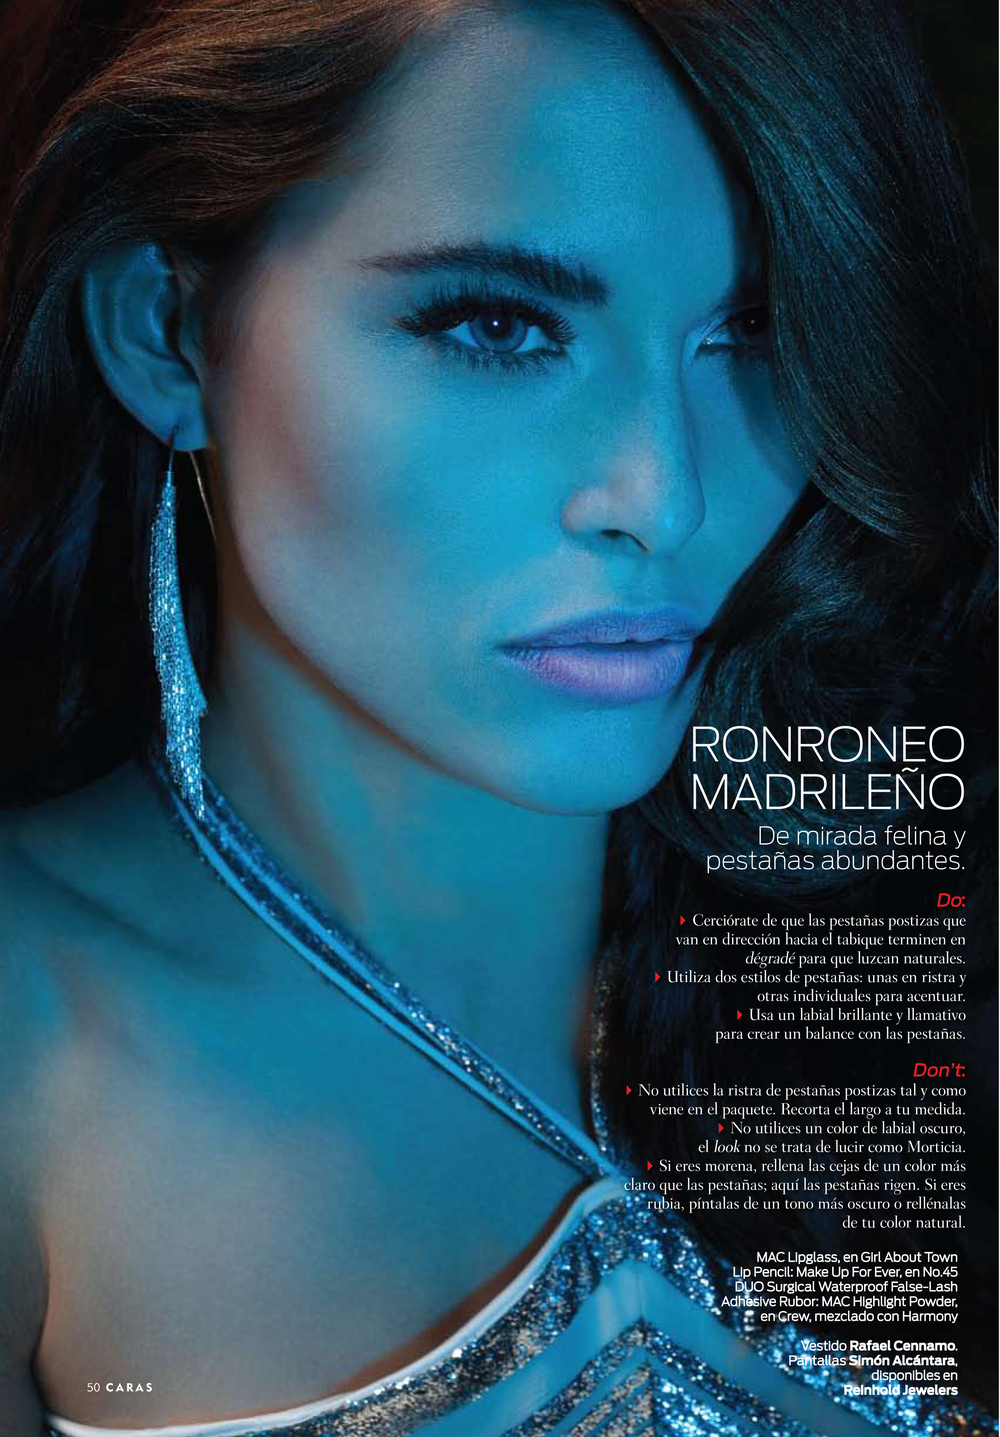 CARAS PUERTO RICO SEPT 2012. RONROEO MADRILEÑO STORY.SIMON ALCANTARA COSMIC SAMURAI STERLING SILVER CHAIN FRINGE HAND WOVEN EARINGS. $850.00 To purchase please use the Contact Us PAGE.